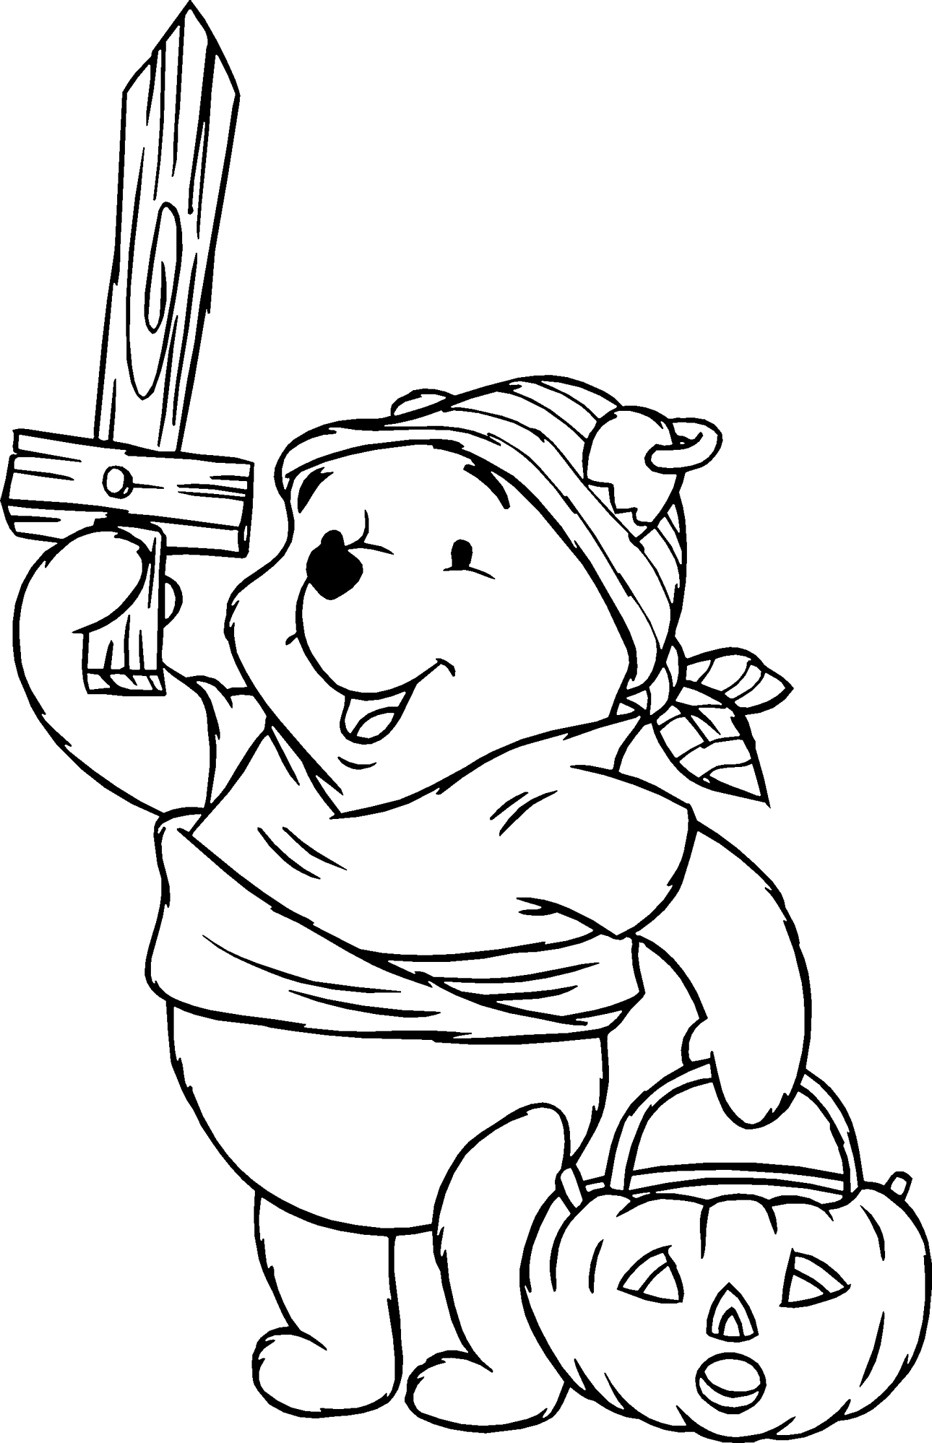 fun coloring pages to print coloring pages for kids by kids art starts for kids pages to coloring print fun